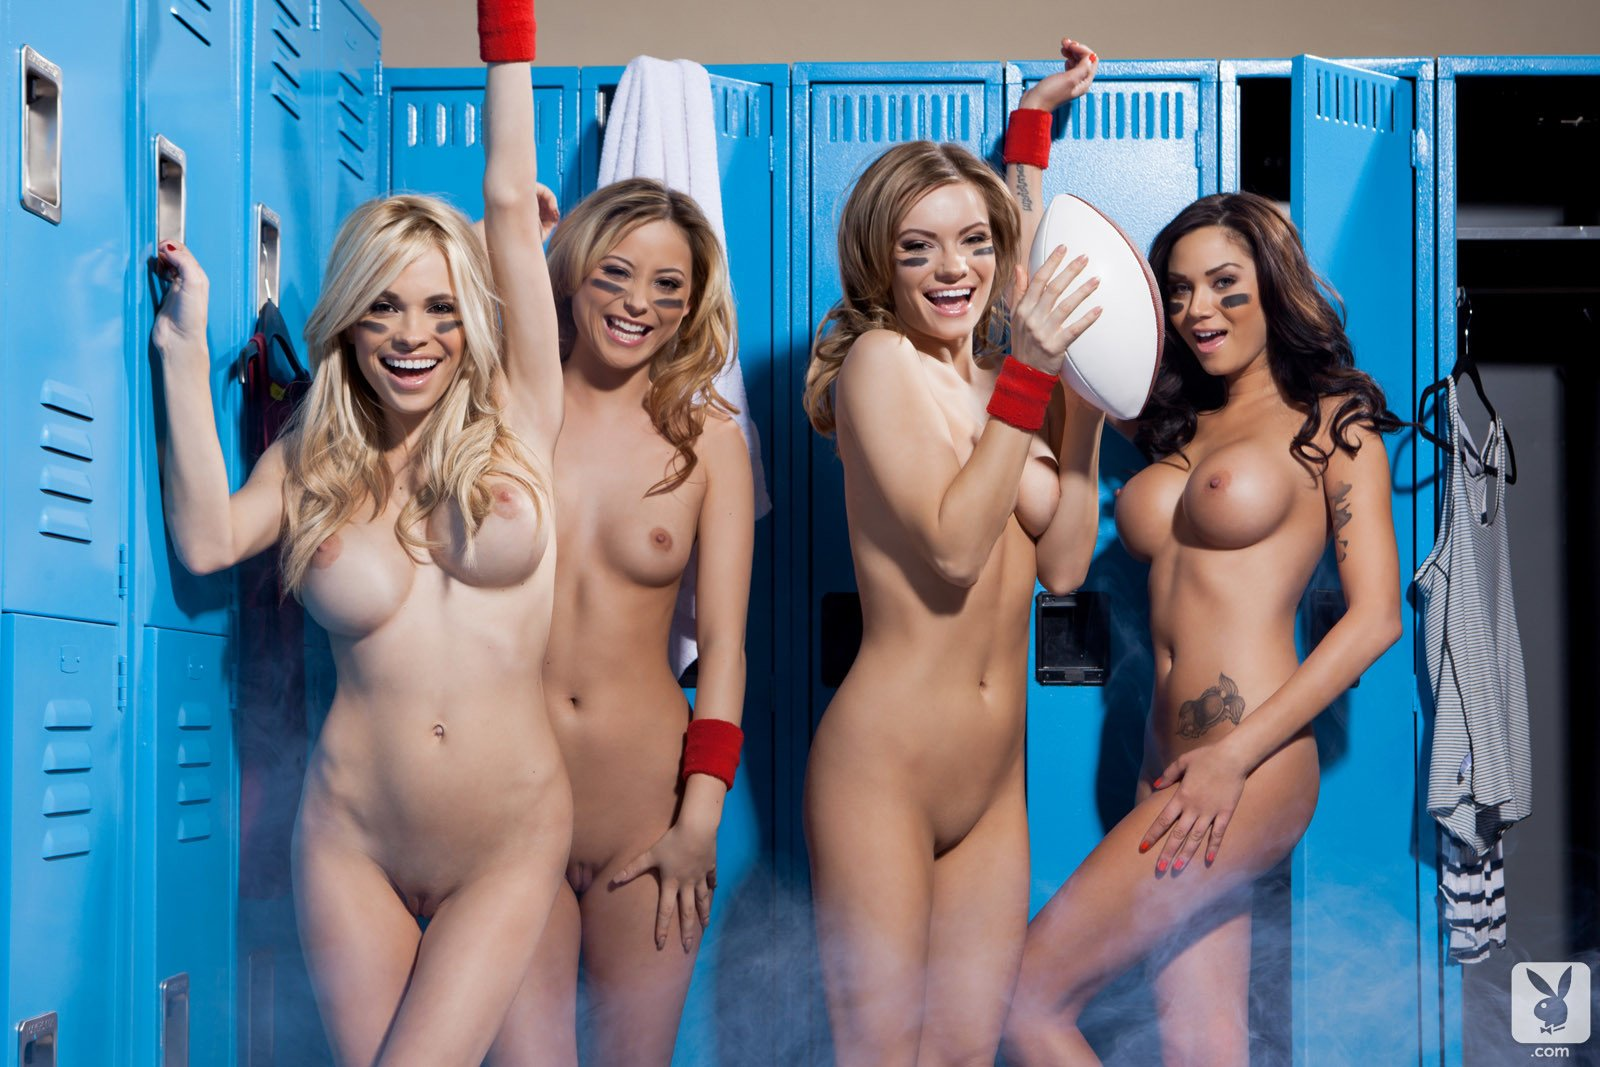 sexy-cheerleaders-nude-for-playboy-deepthroat-soundlessporn-gif